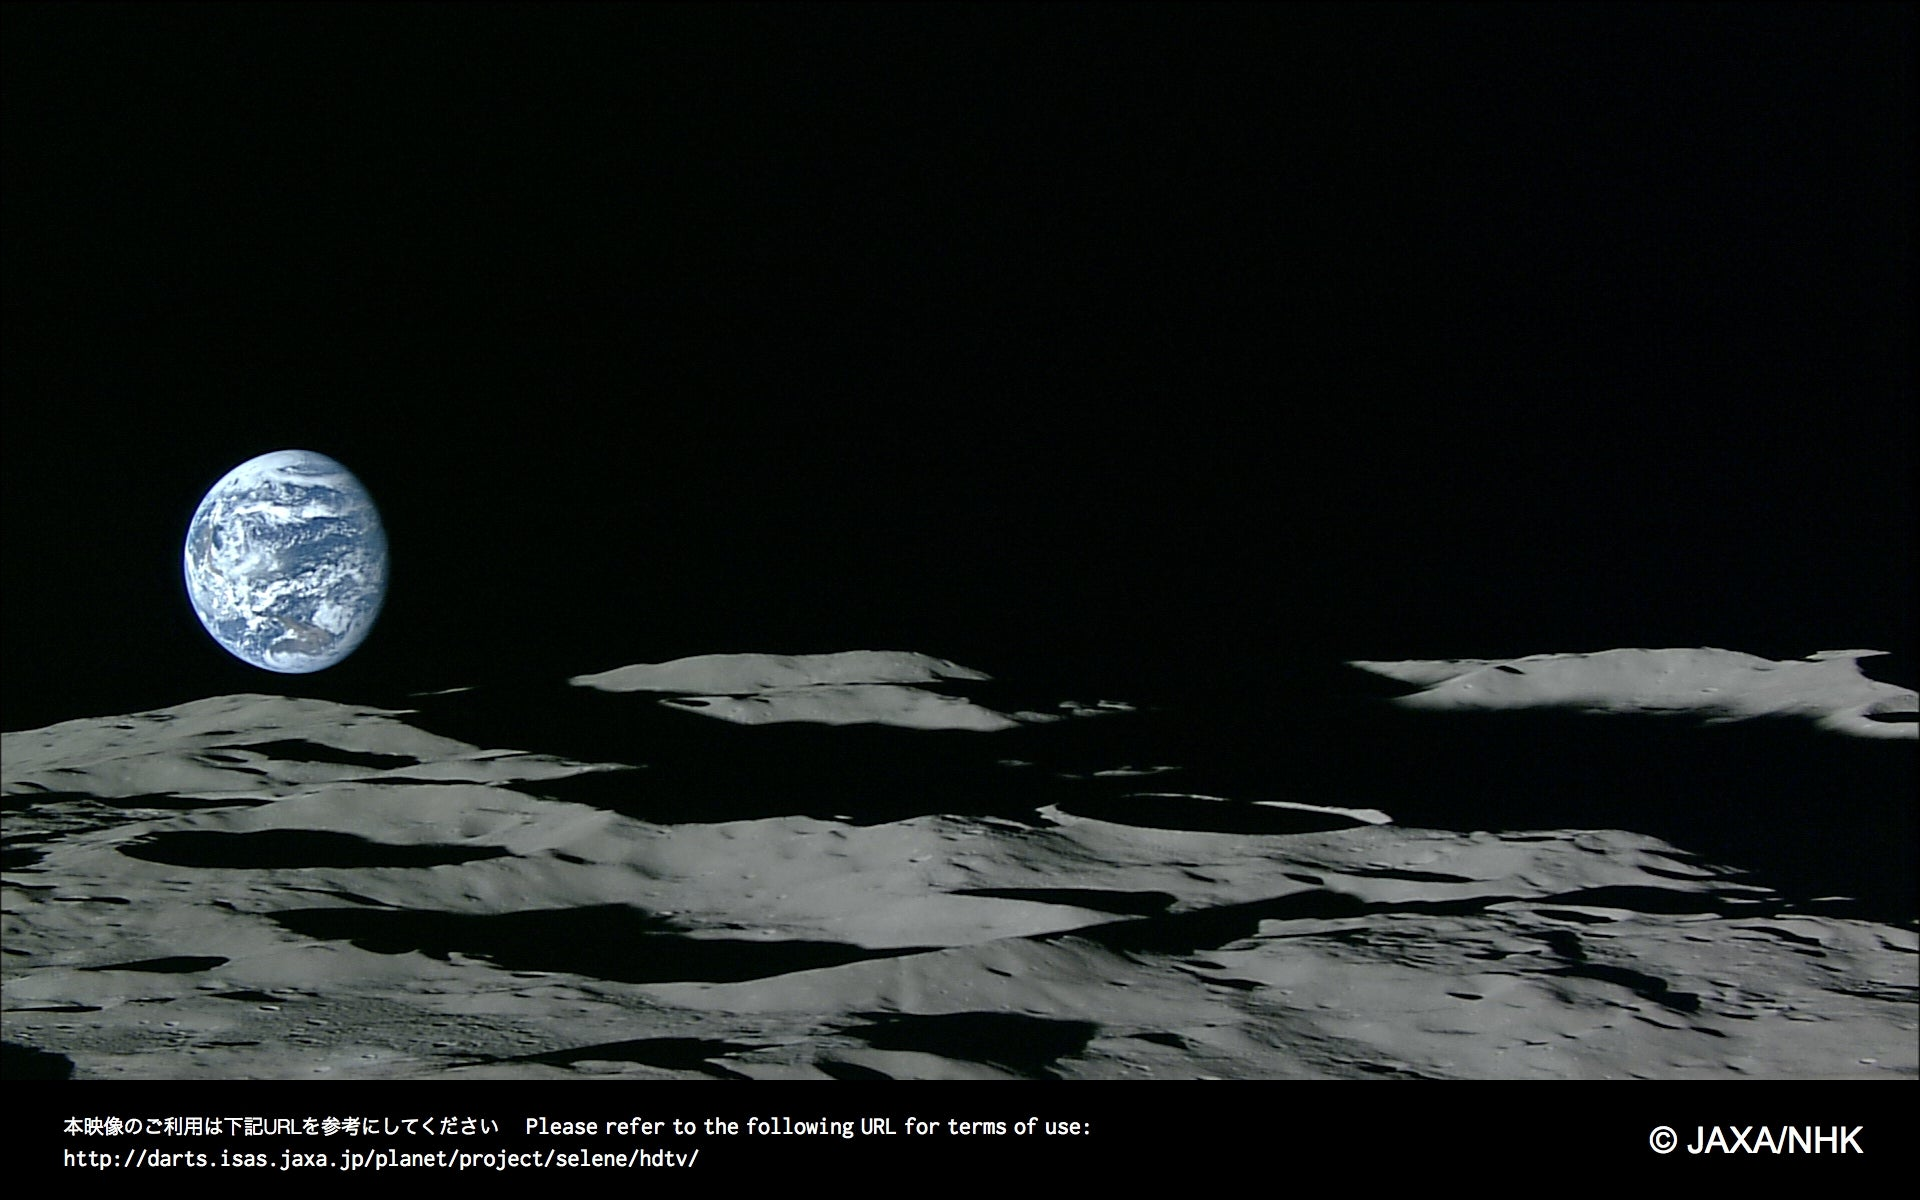 earthrise renewed - scientific american blog network